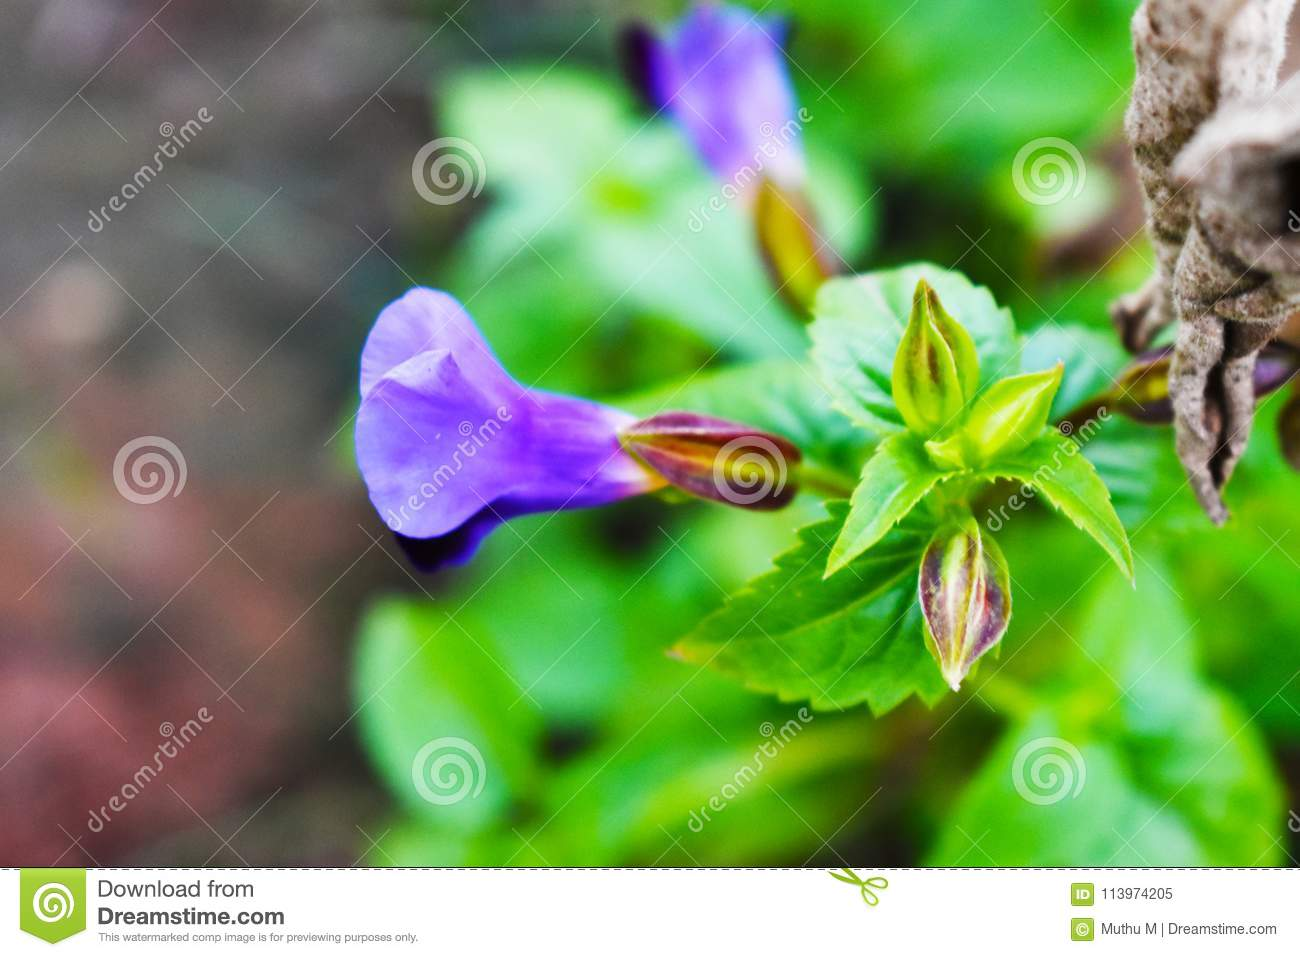 Awesome plants with lavender color flower